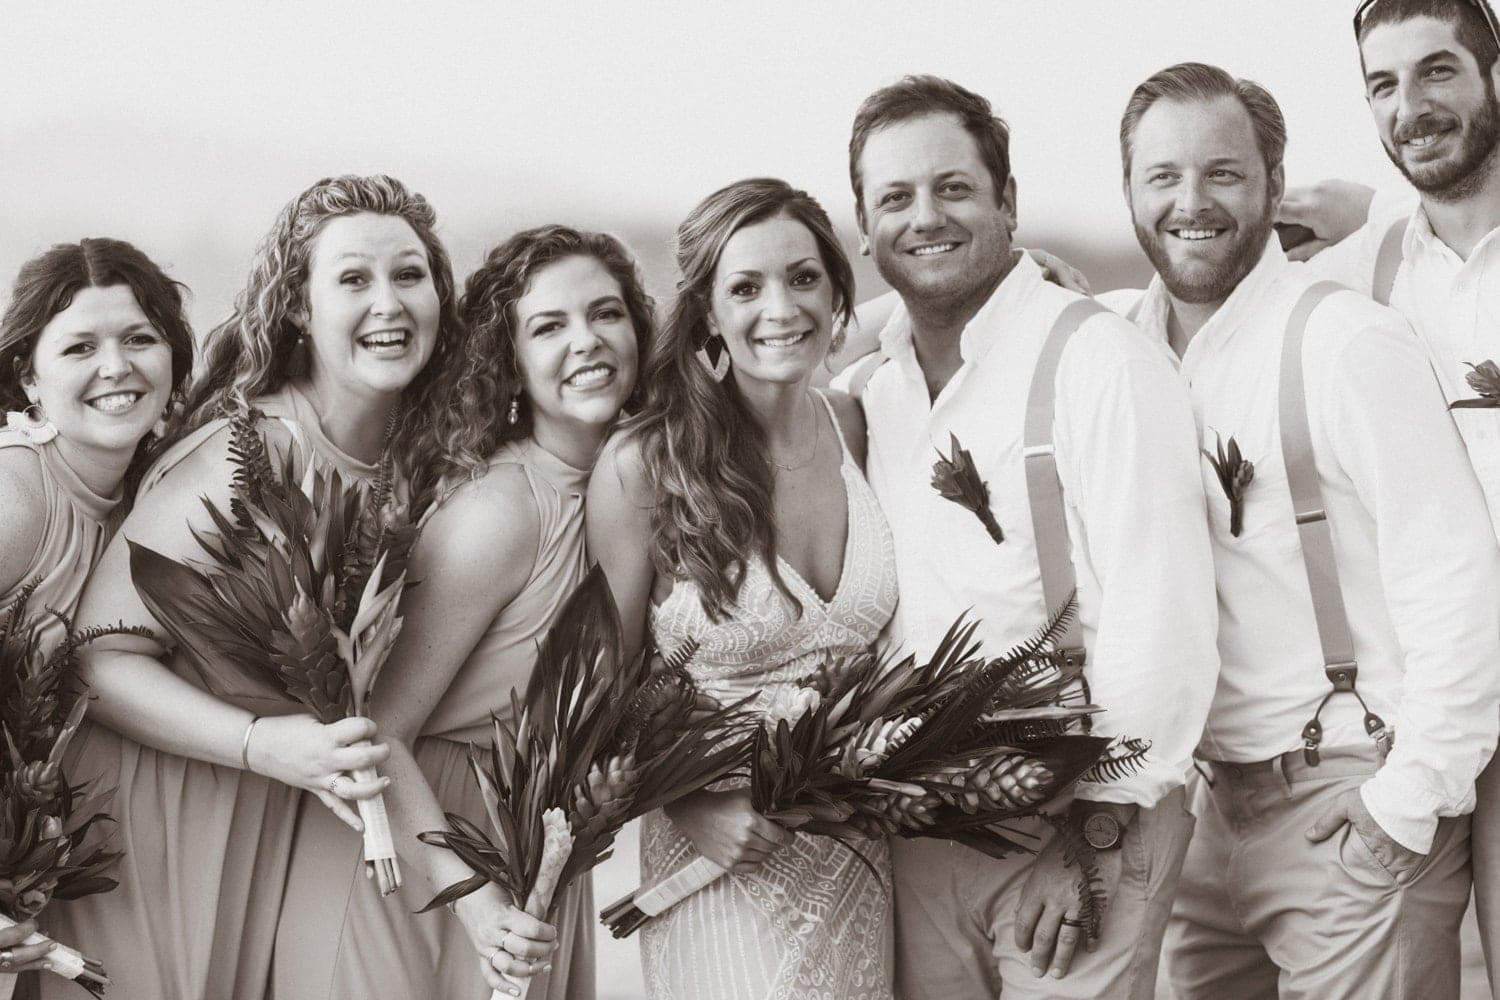 Black and white photo of just-married couple on beach surrounded by bridesmaids and groomsmen.